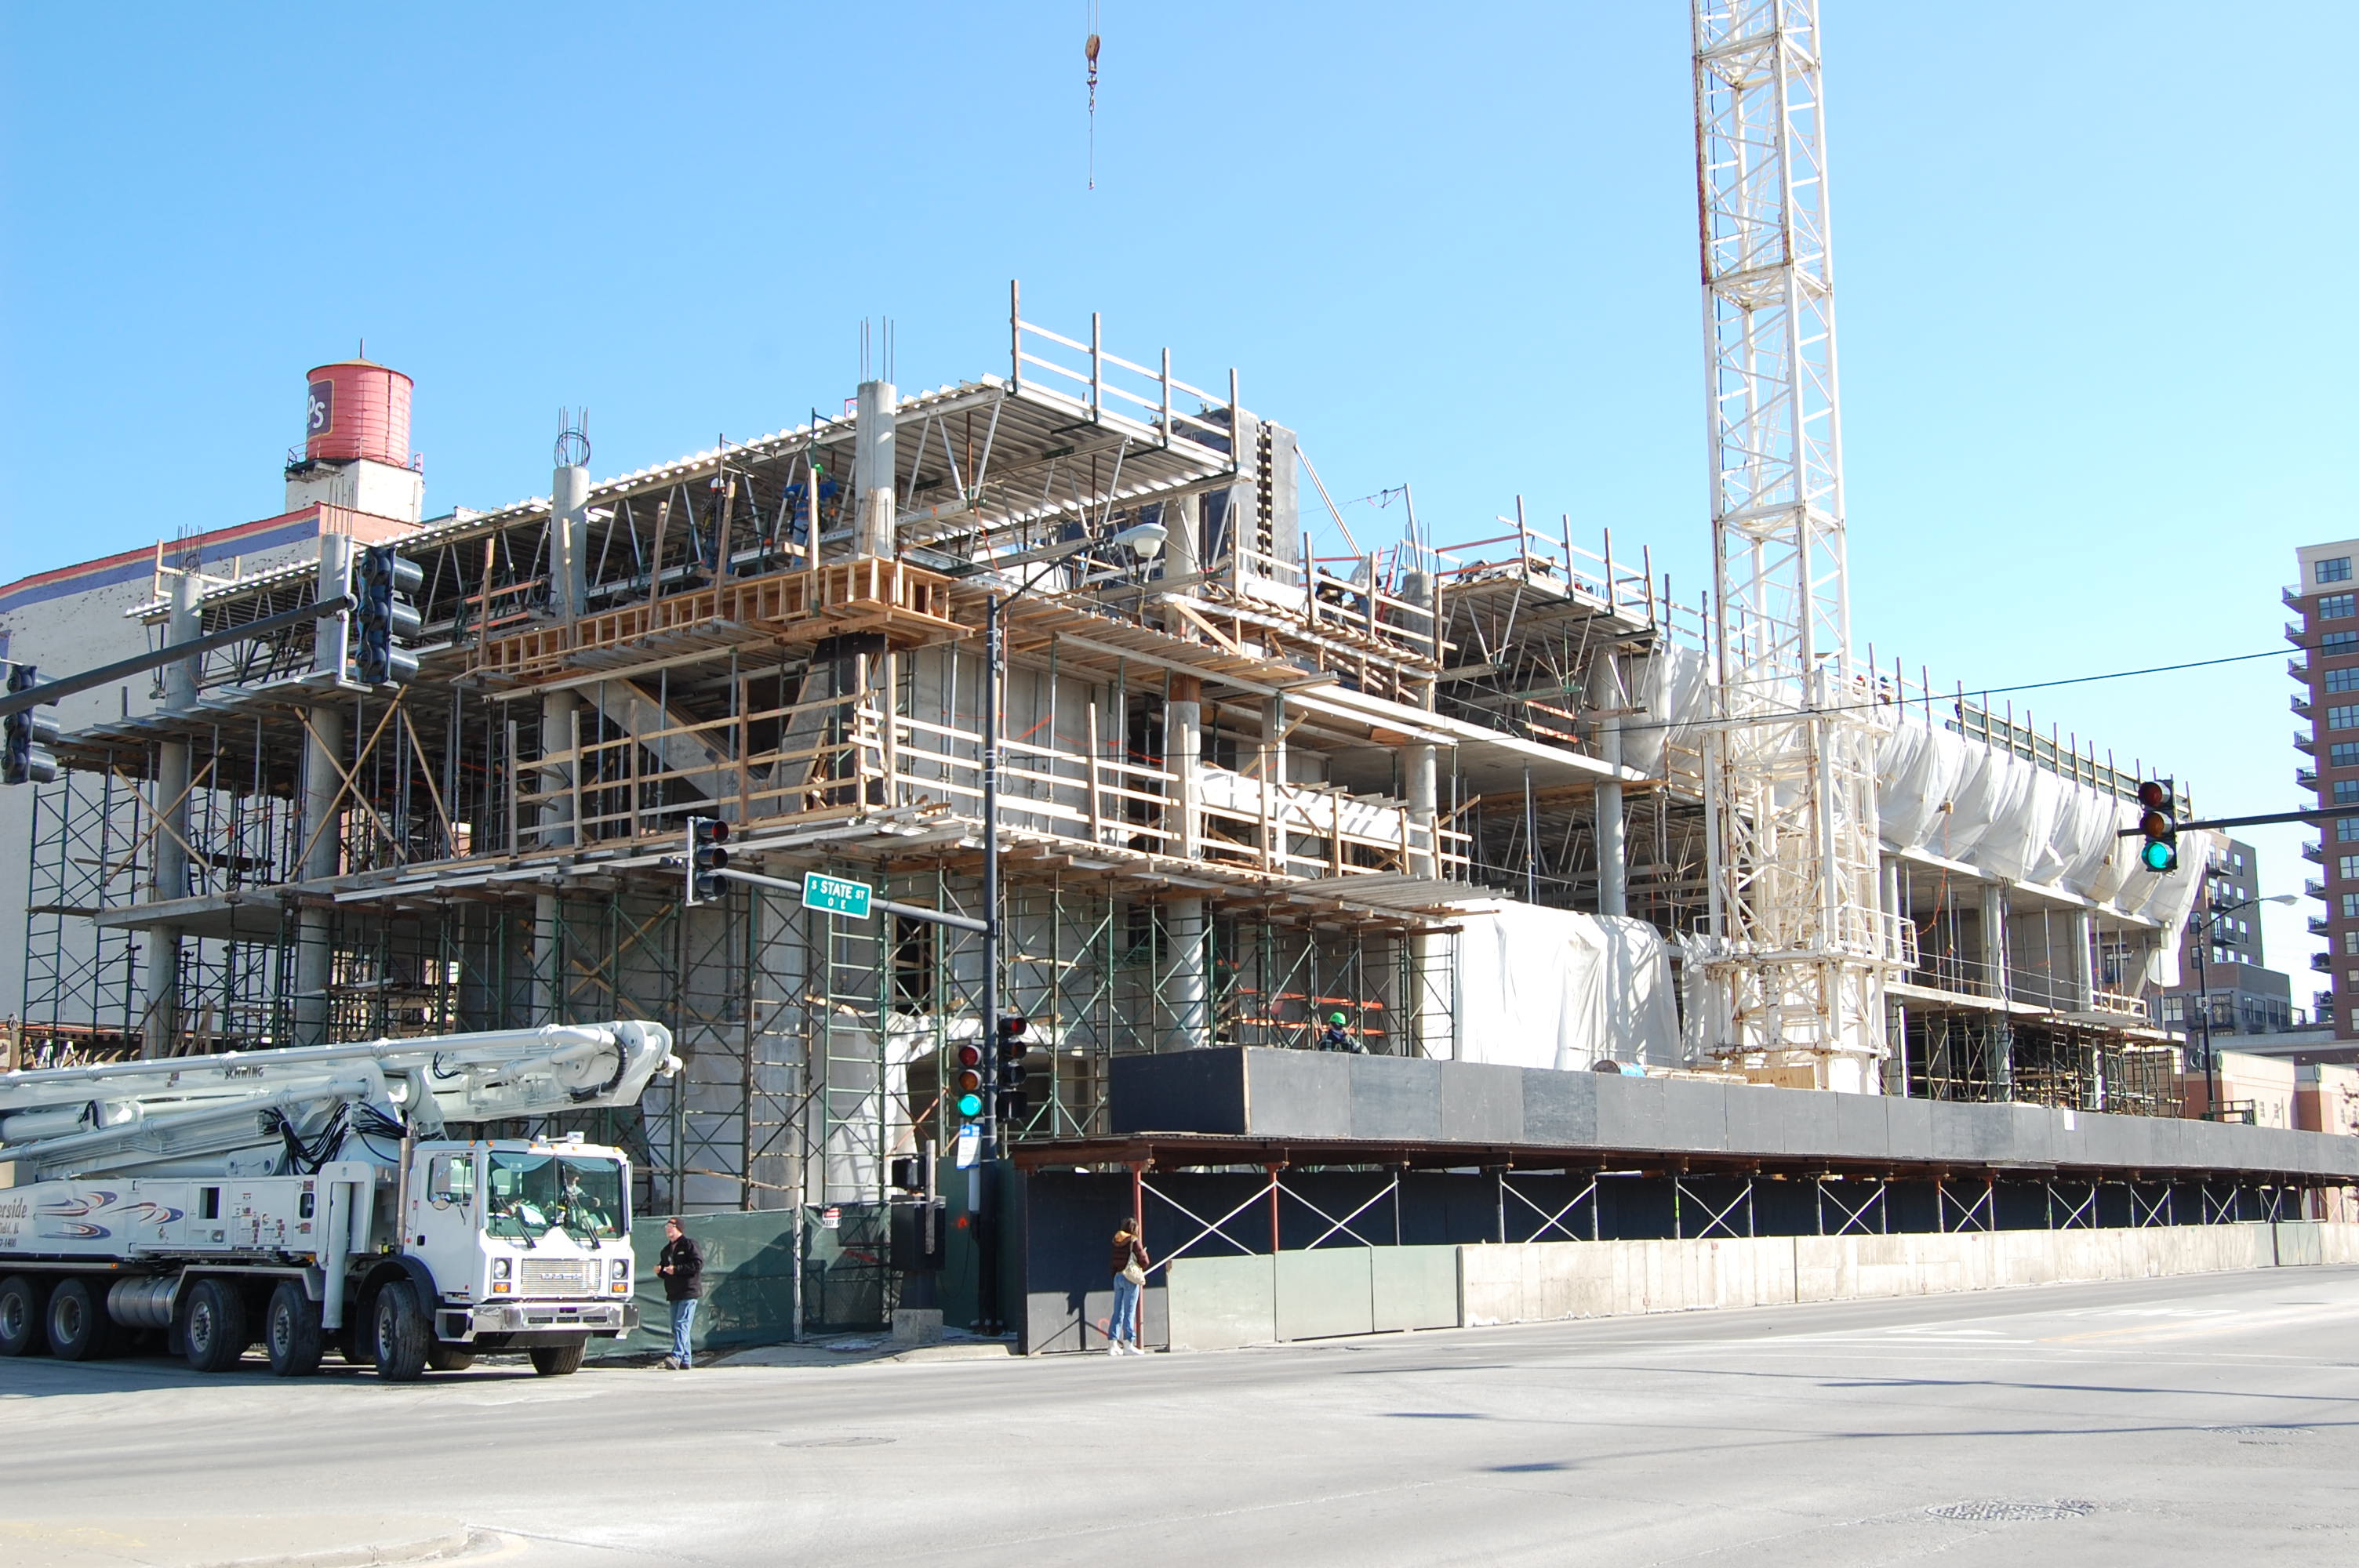 Rental high-rise under construction in South Loop